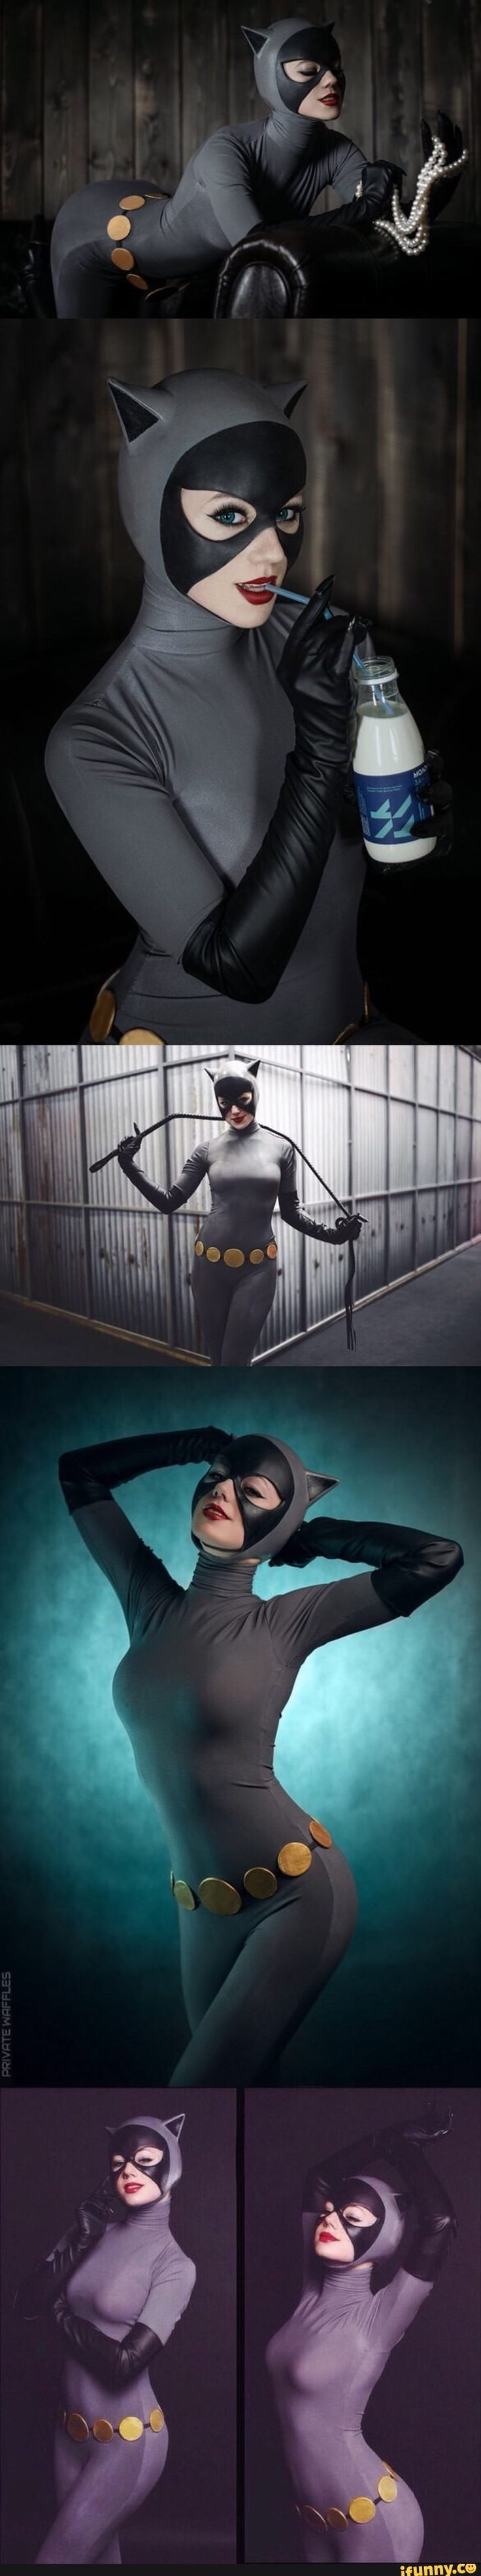 #catwoman, #cosplay, #batmantheanimatedseries